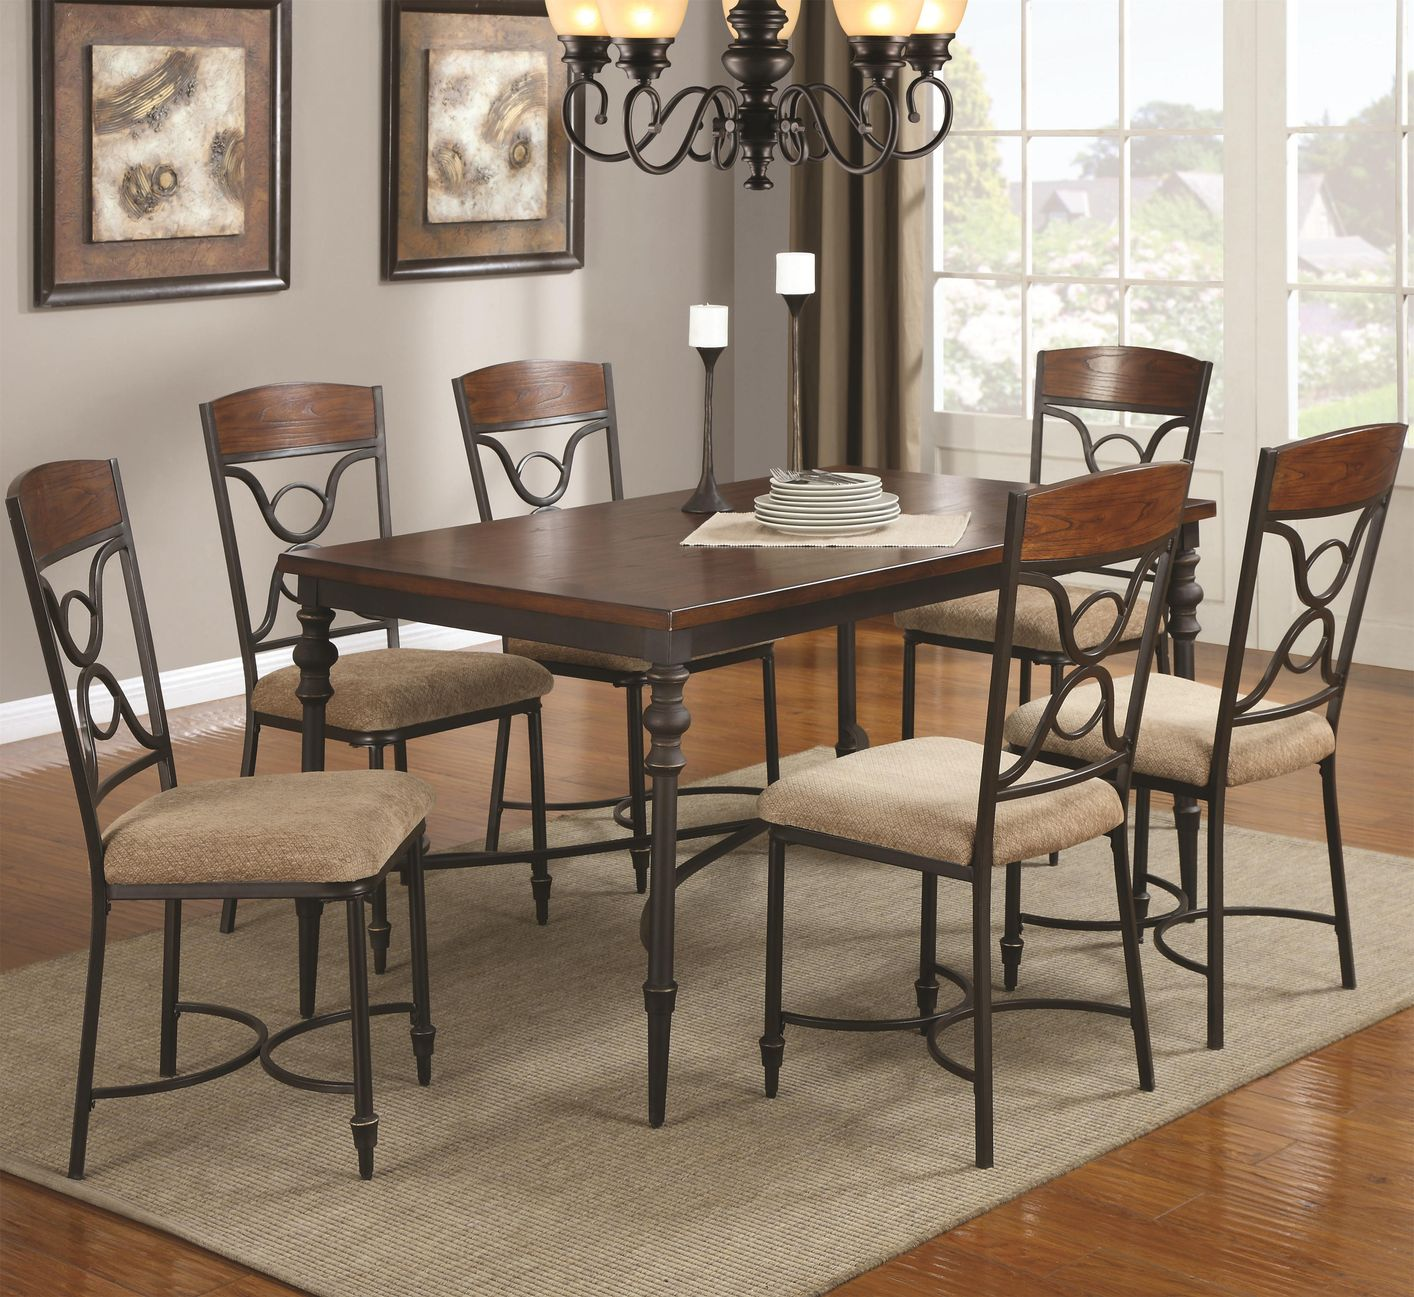 Superieur Klaus Cherry Metal And Wood Dining Table Set